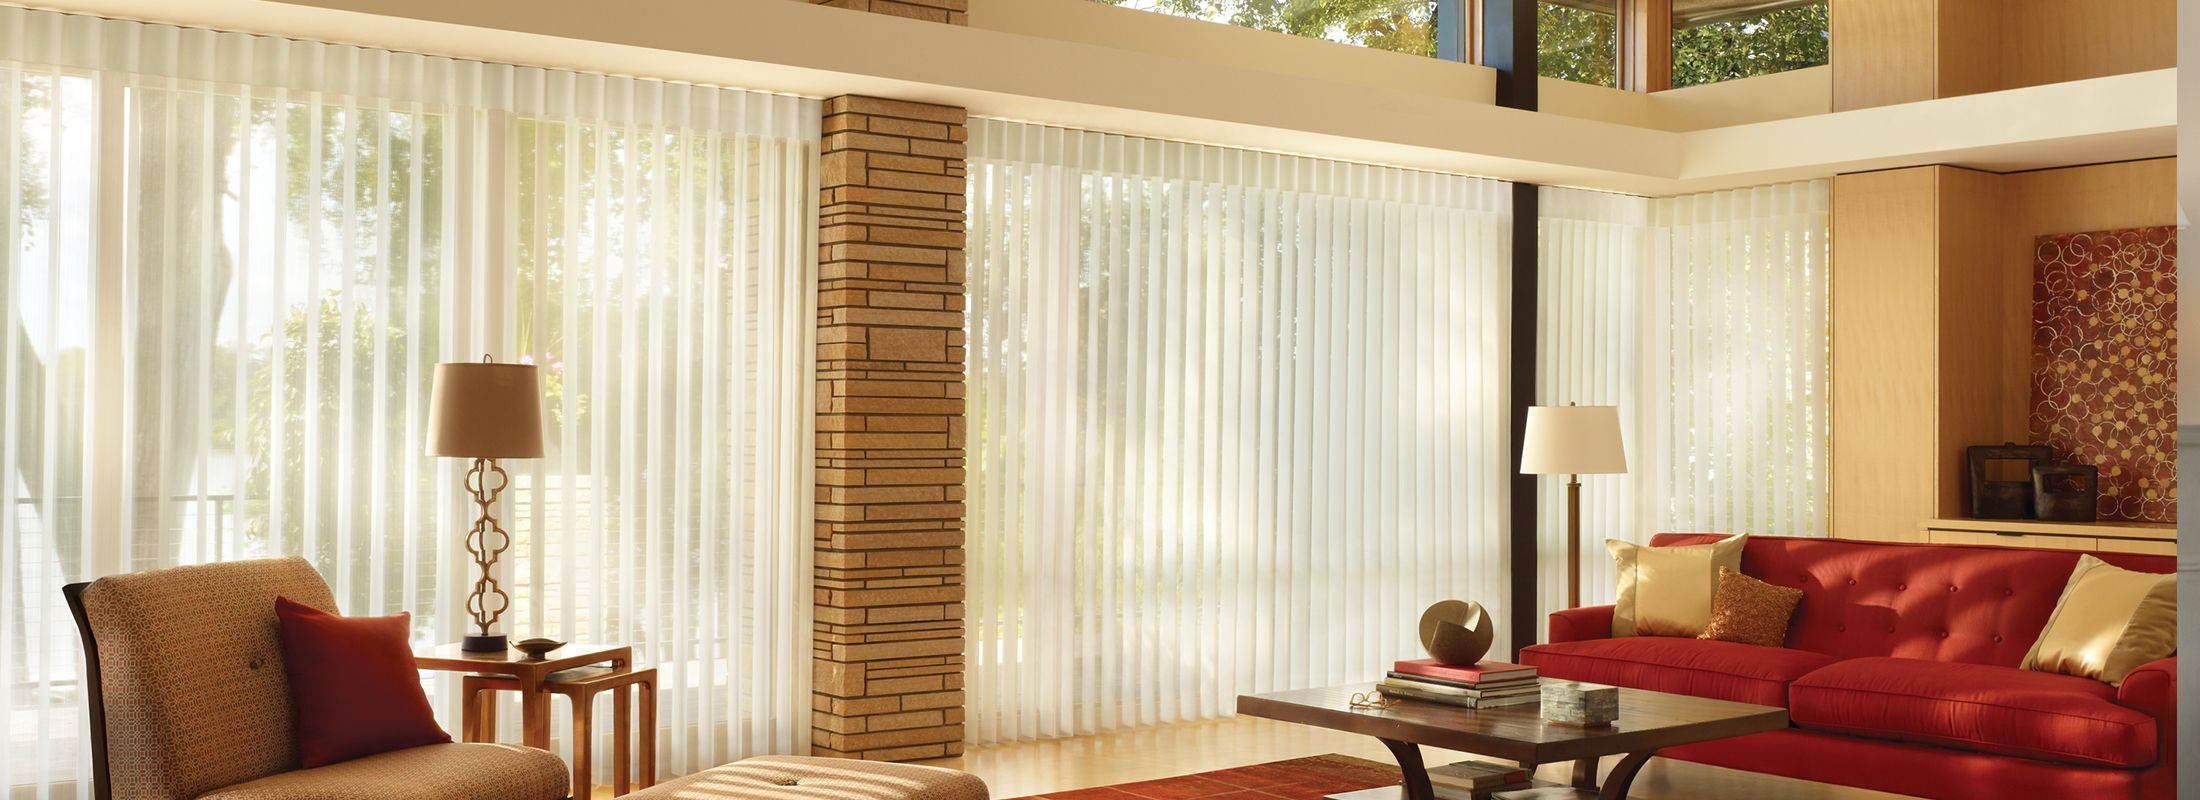 Selecting the right windowtreatment for yourhousehold